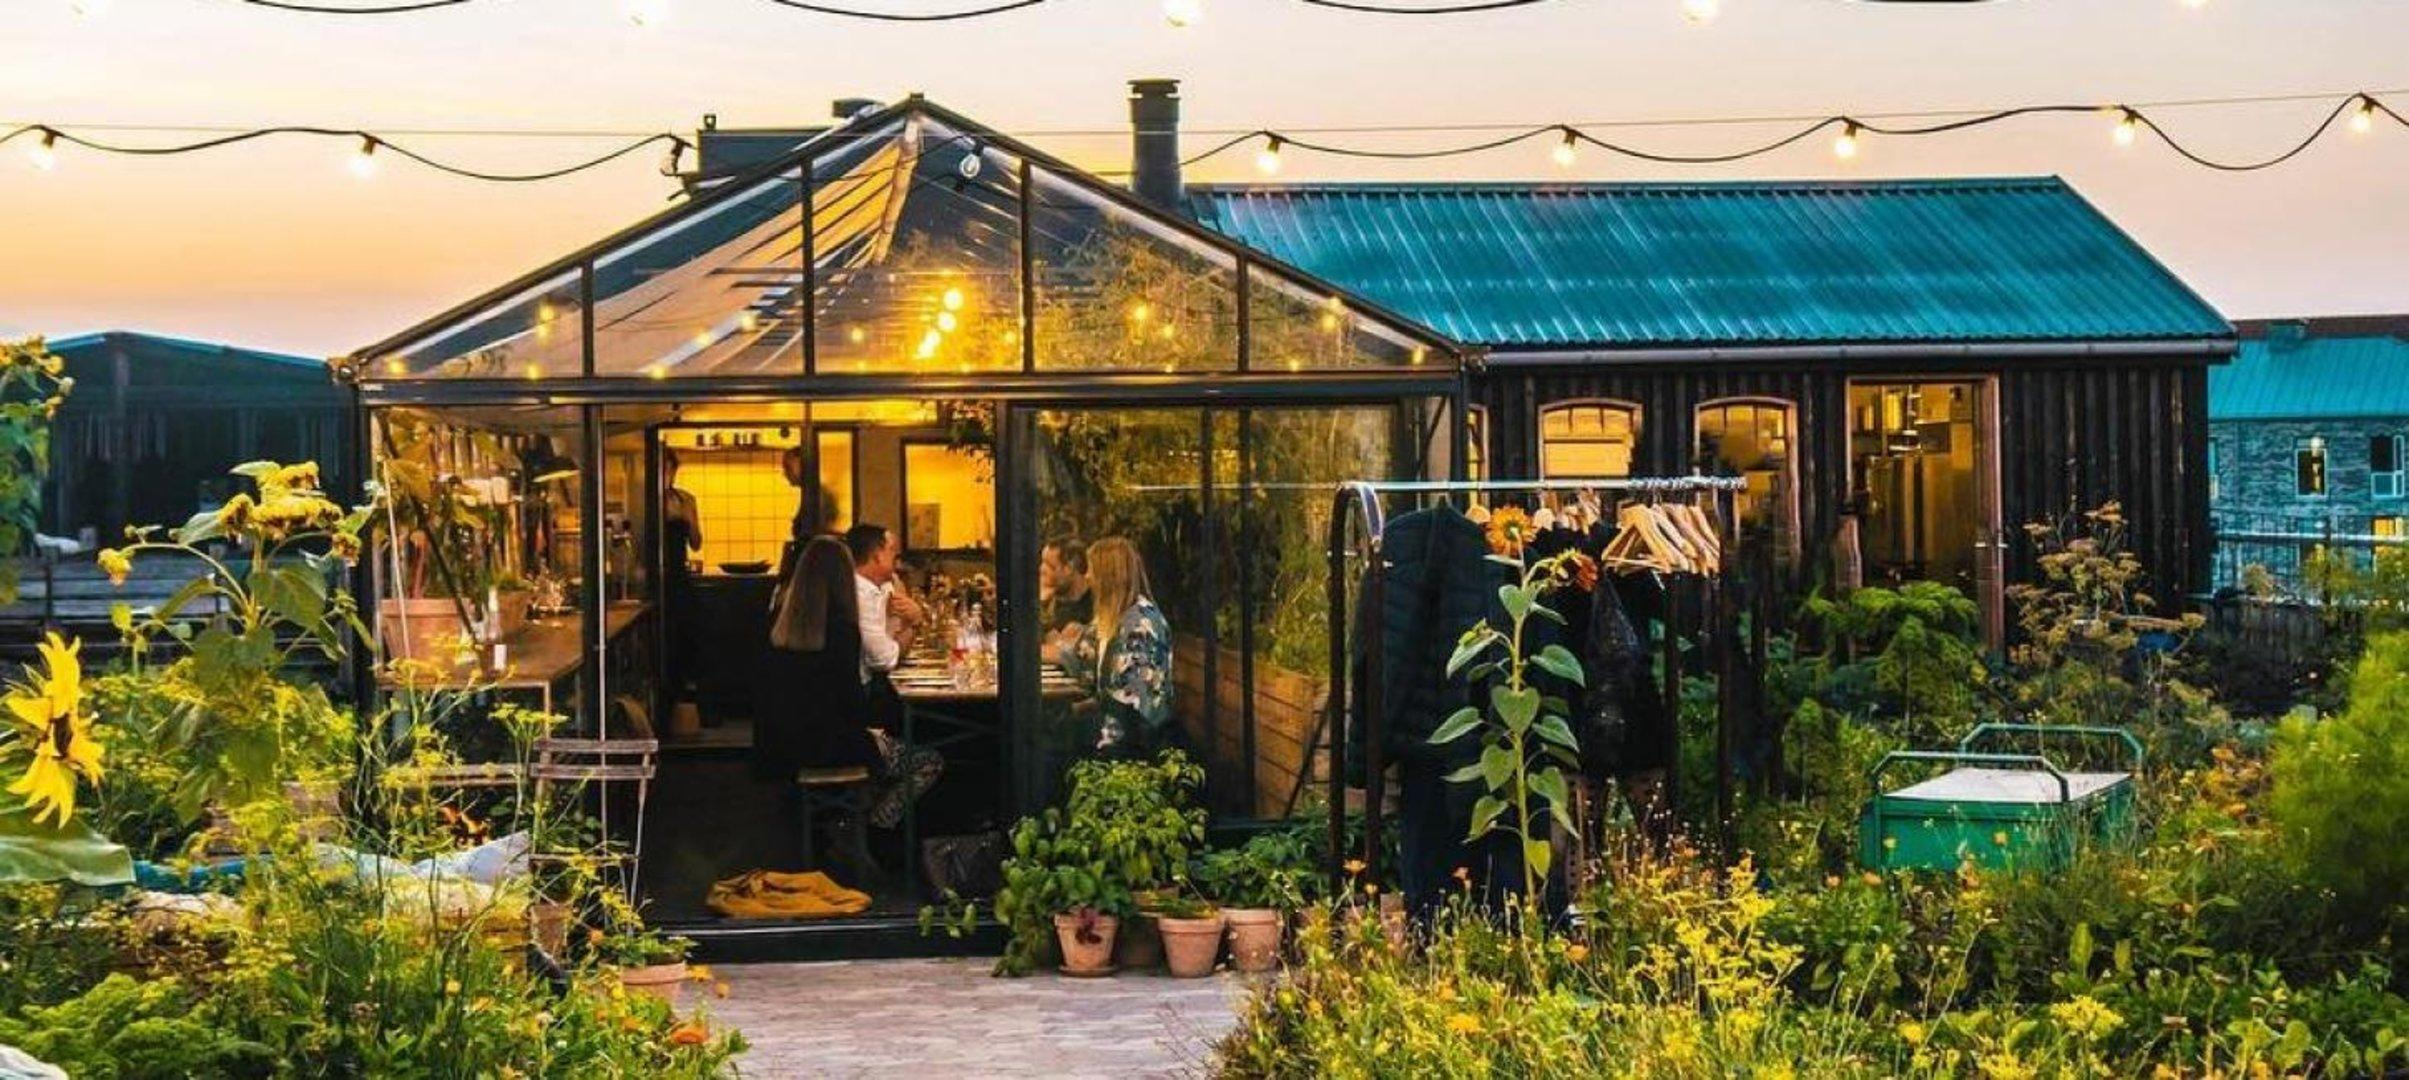 Our guide to the best of Copenhagen's food scene Thumbnail